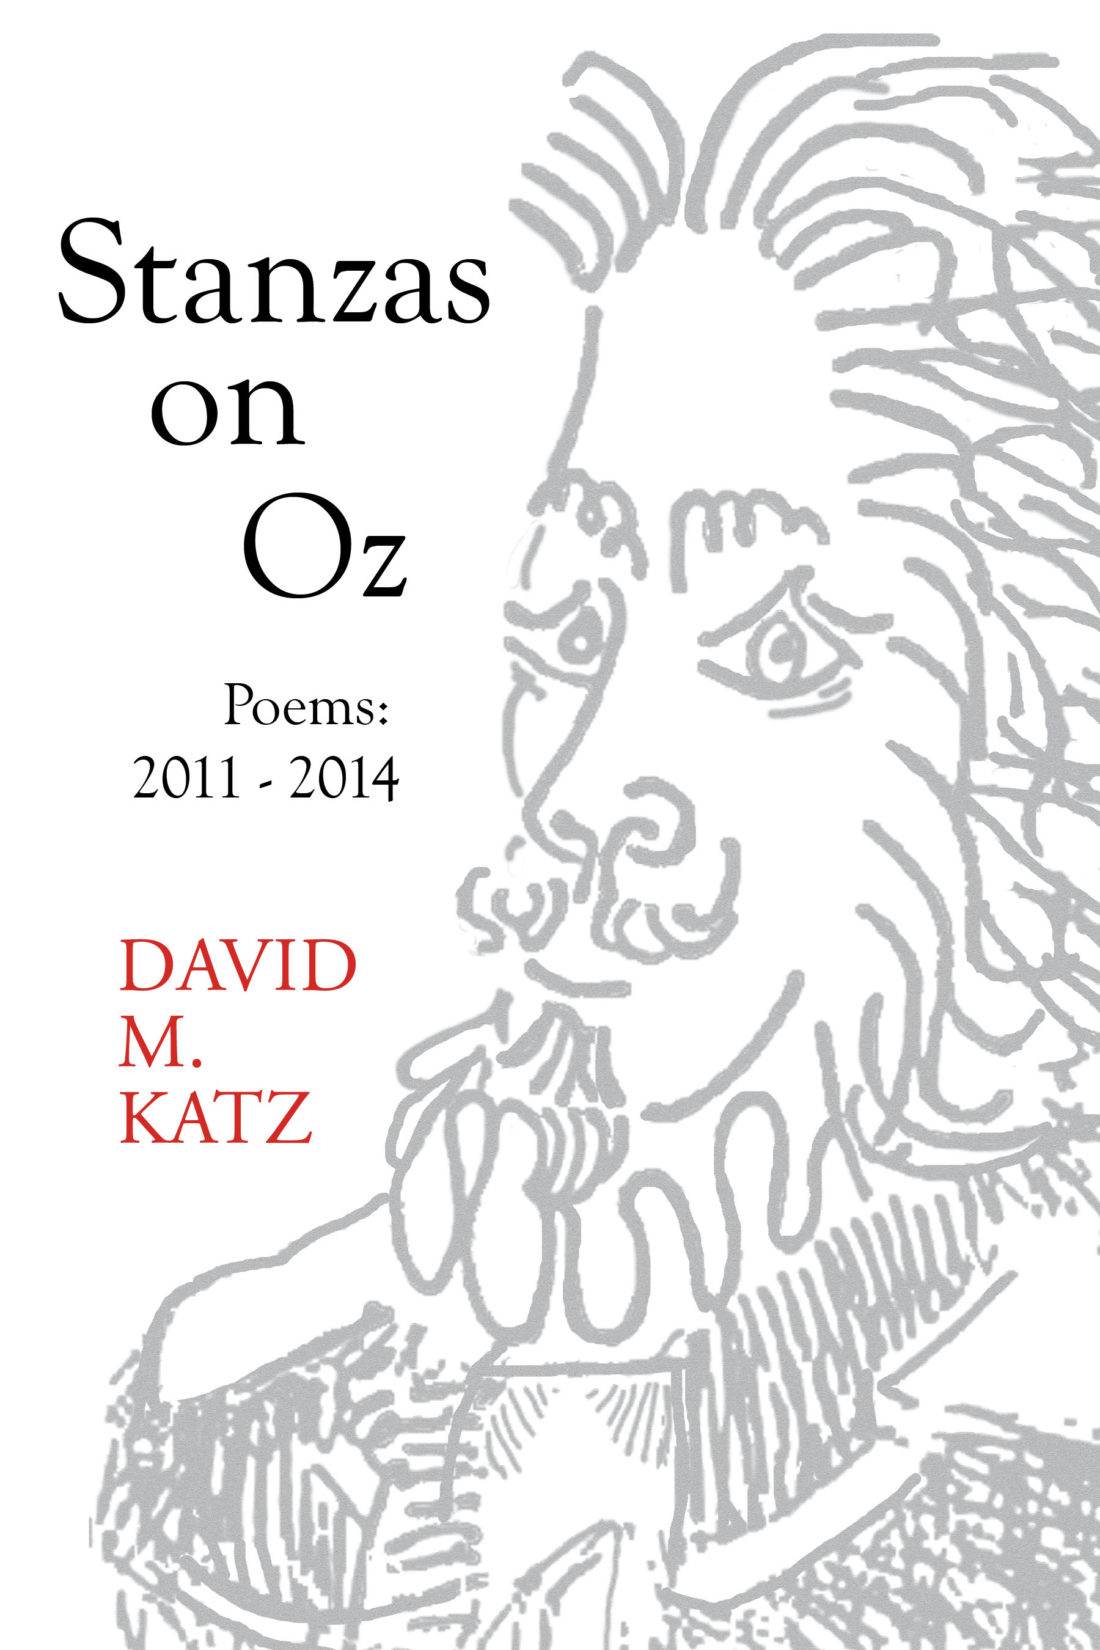 Stanzas on Oz by David M. Katz